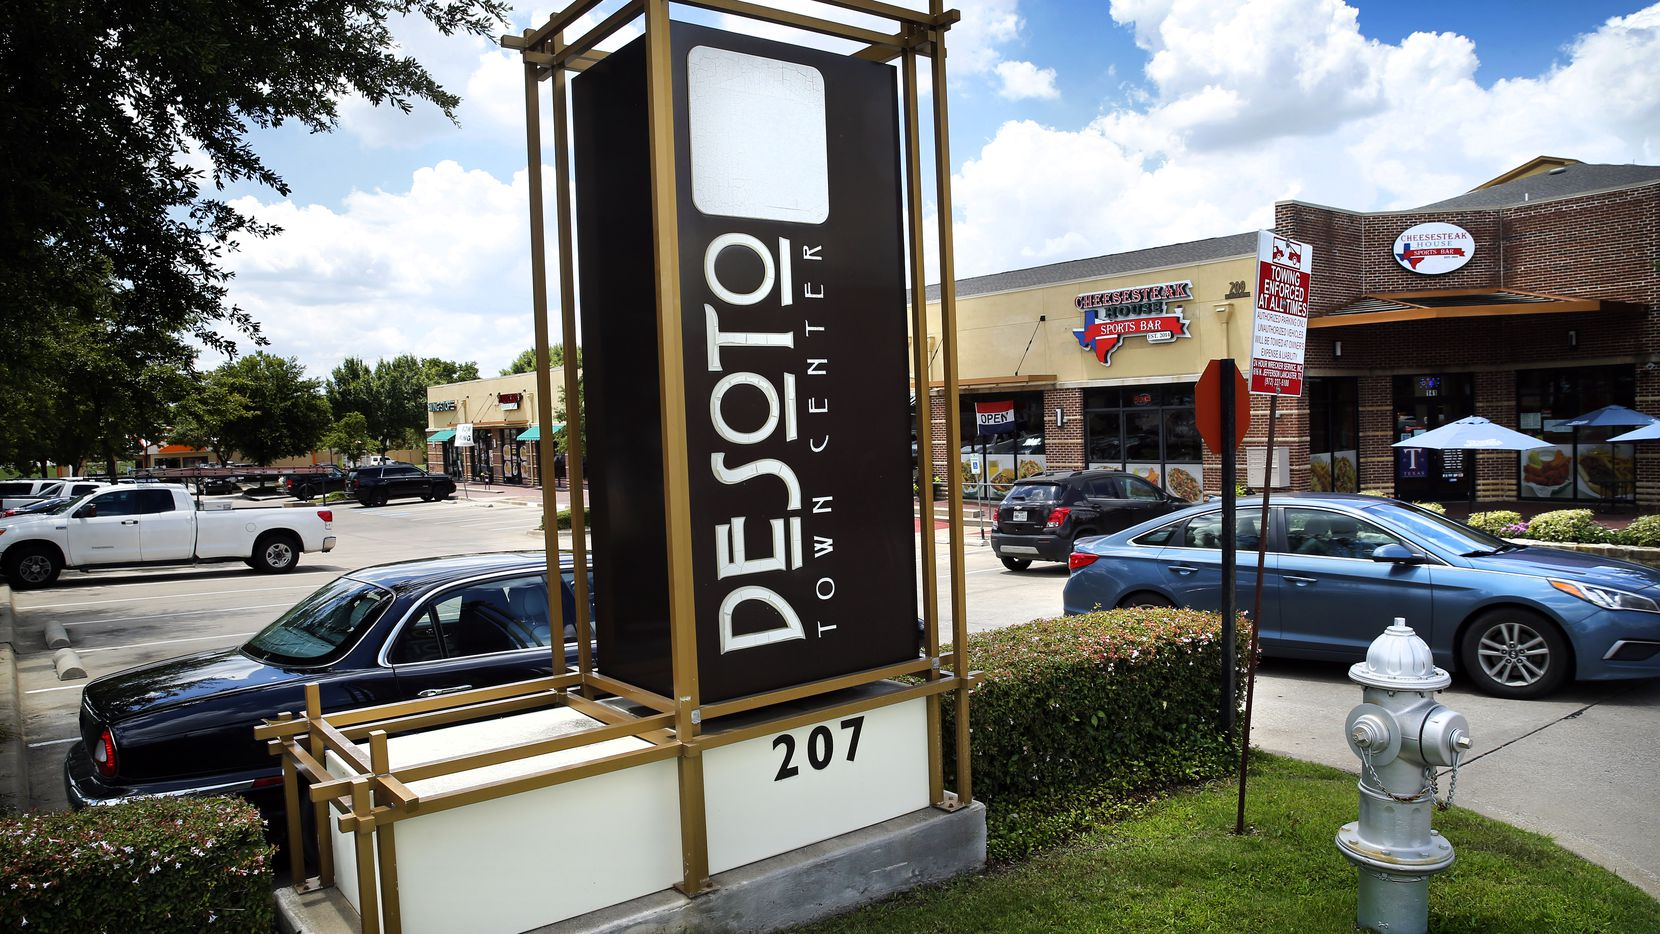 The DeSoto Town Center is pictured in this file photo. Candidates for mayor and city council will meet Thursday in an online forum.